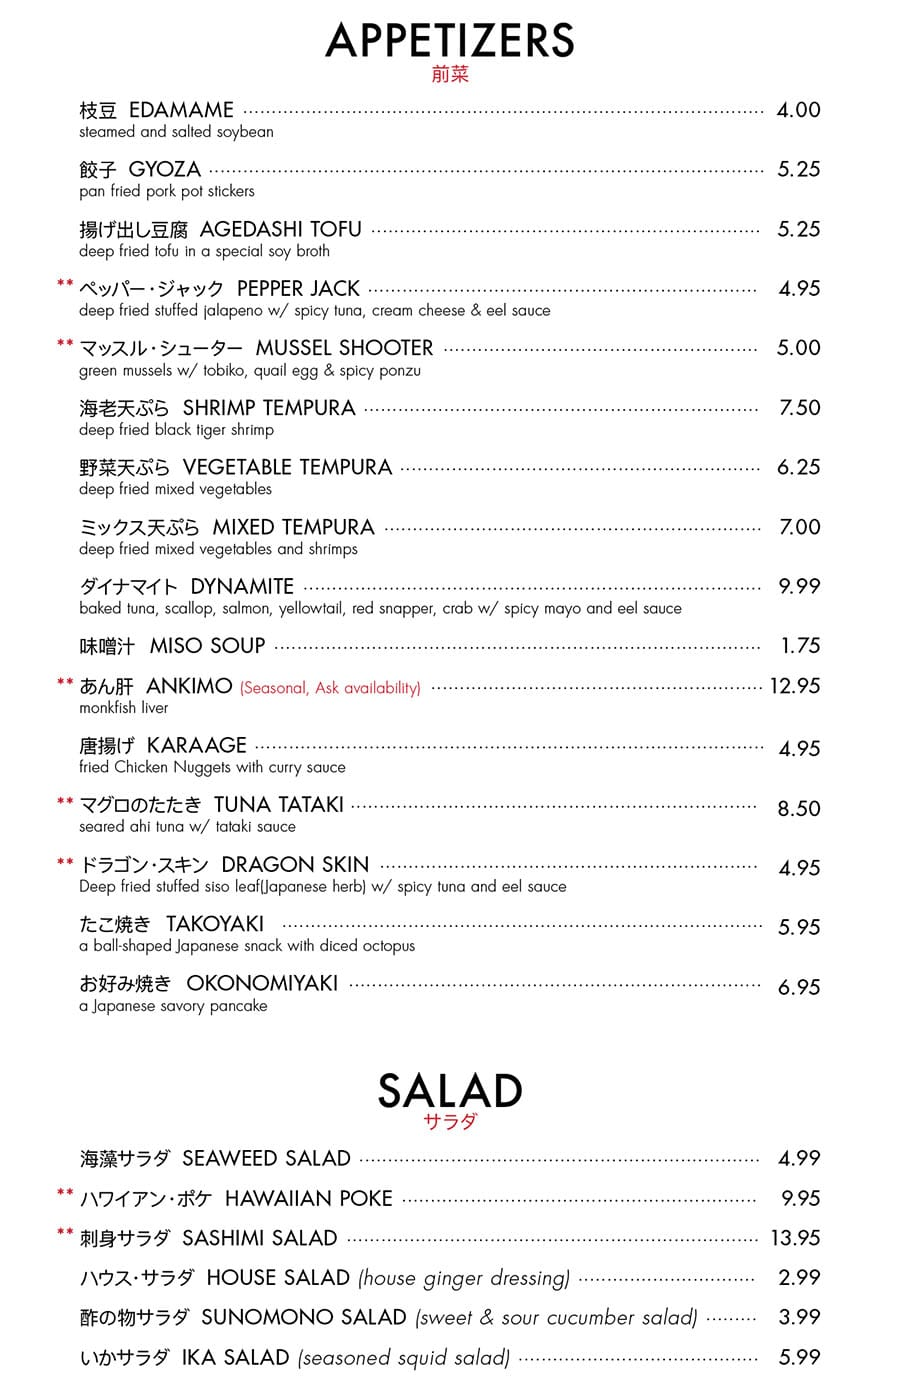 Itto Sushi menu - appetizers, salds